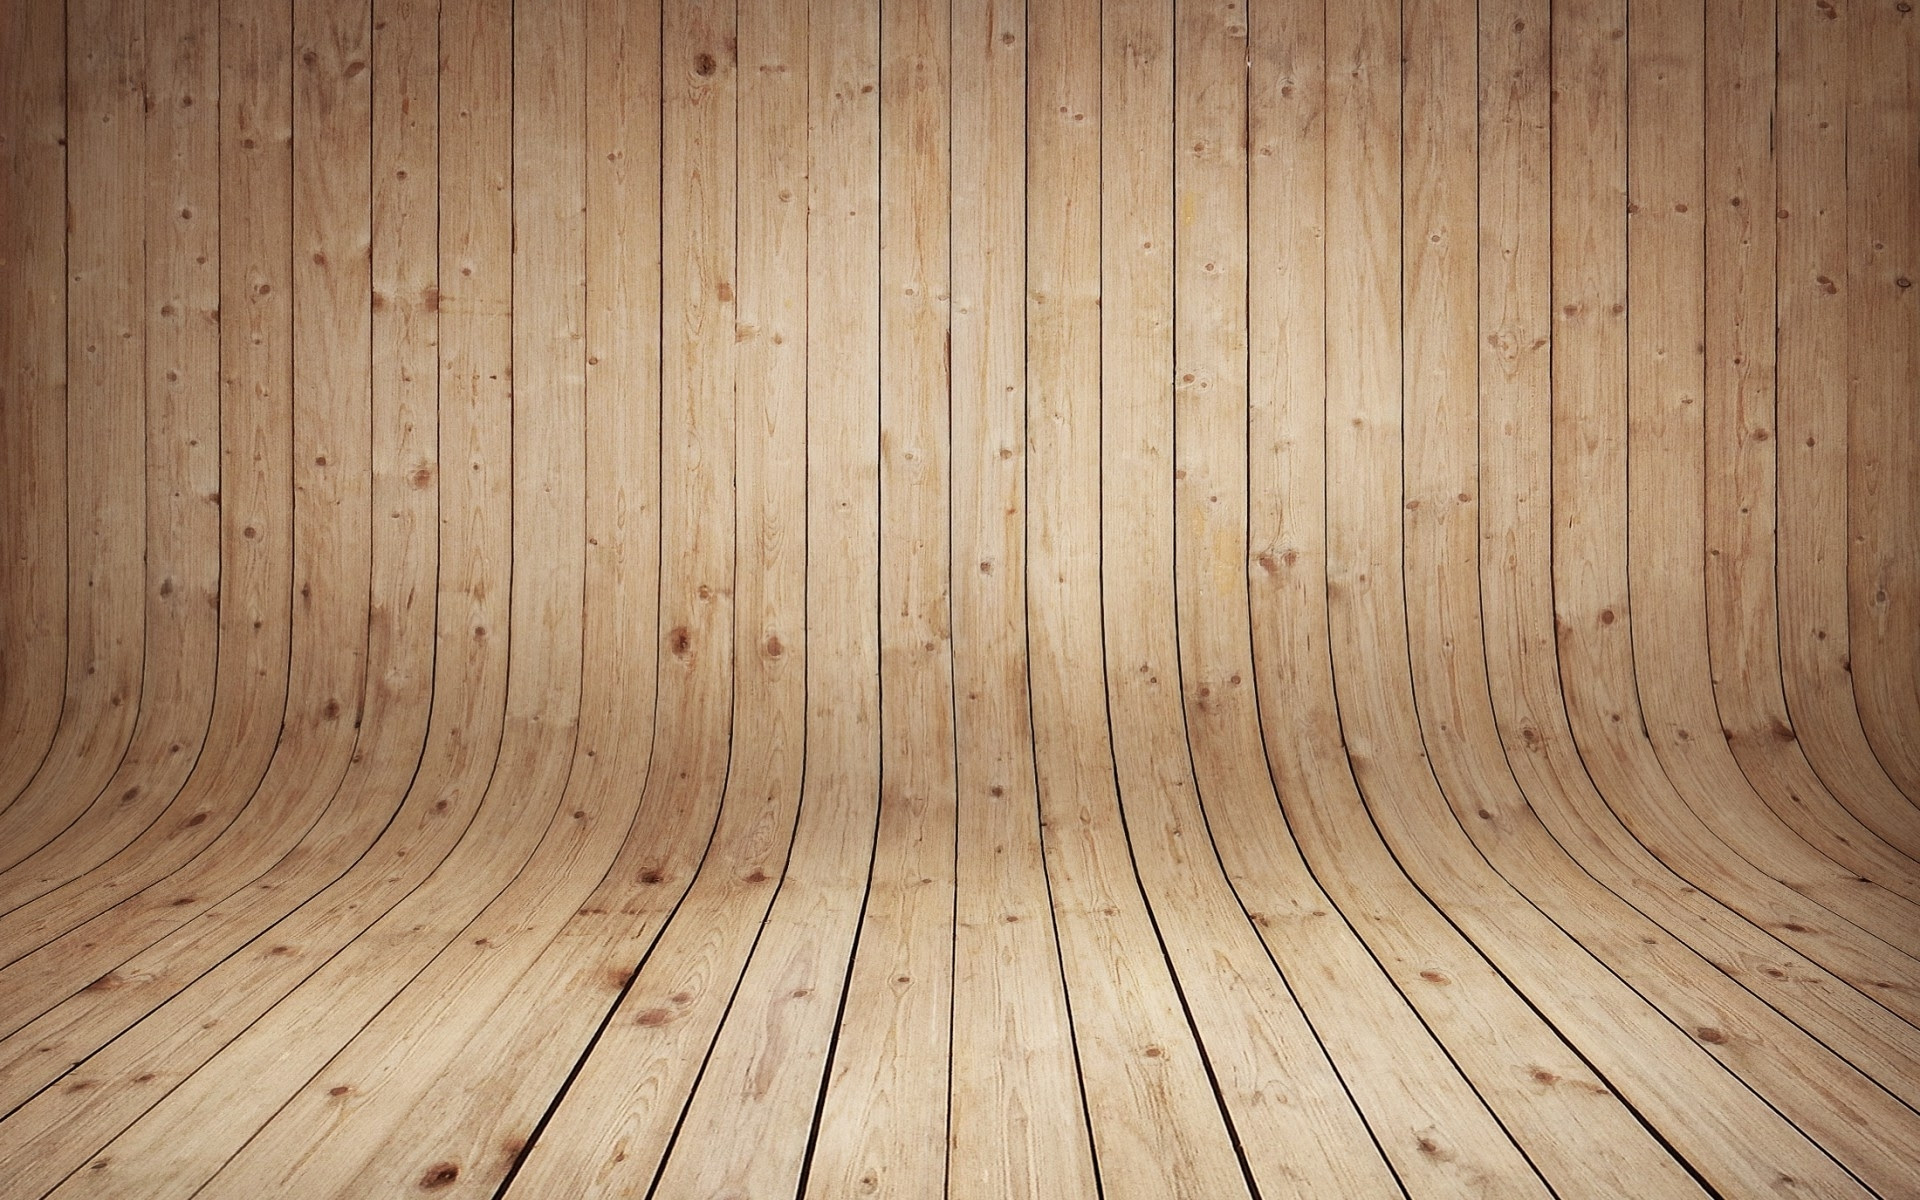 Wood Wallpapers High Quality  Download Free